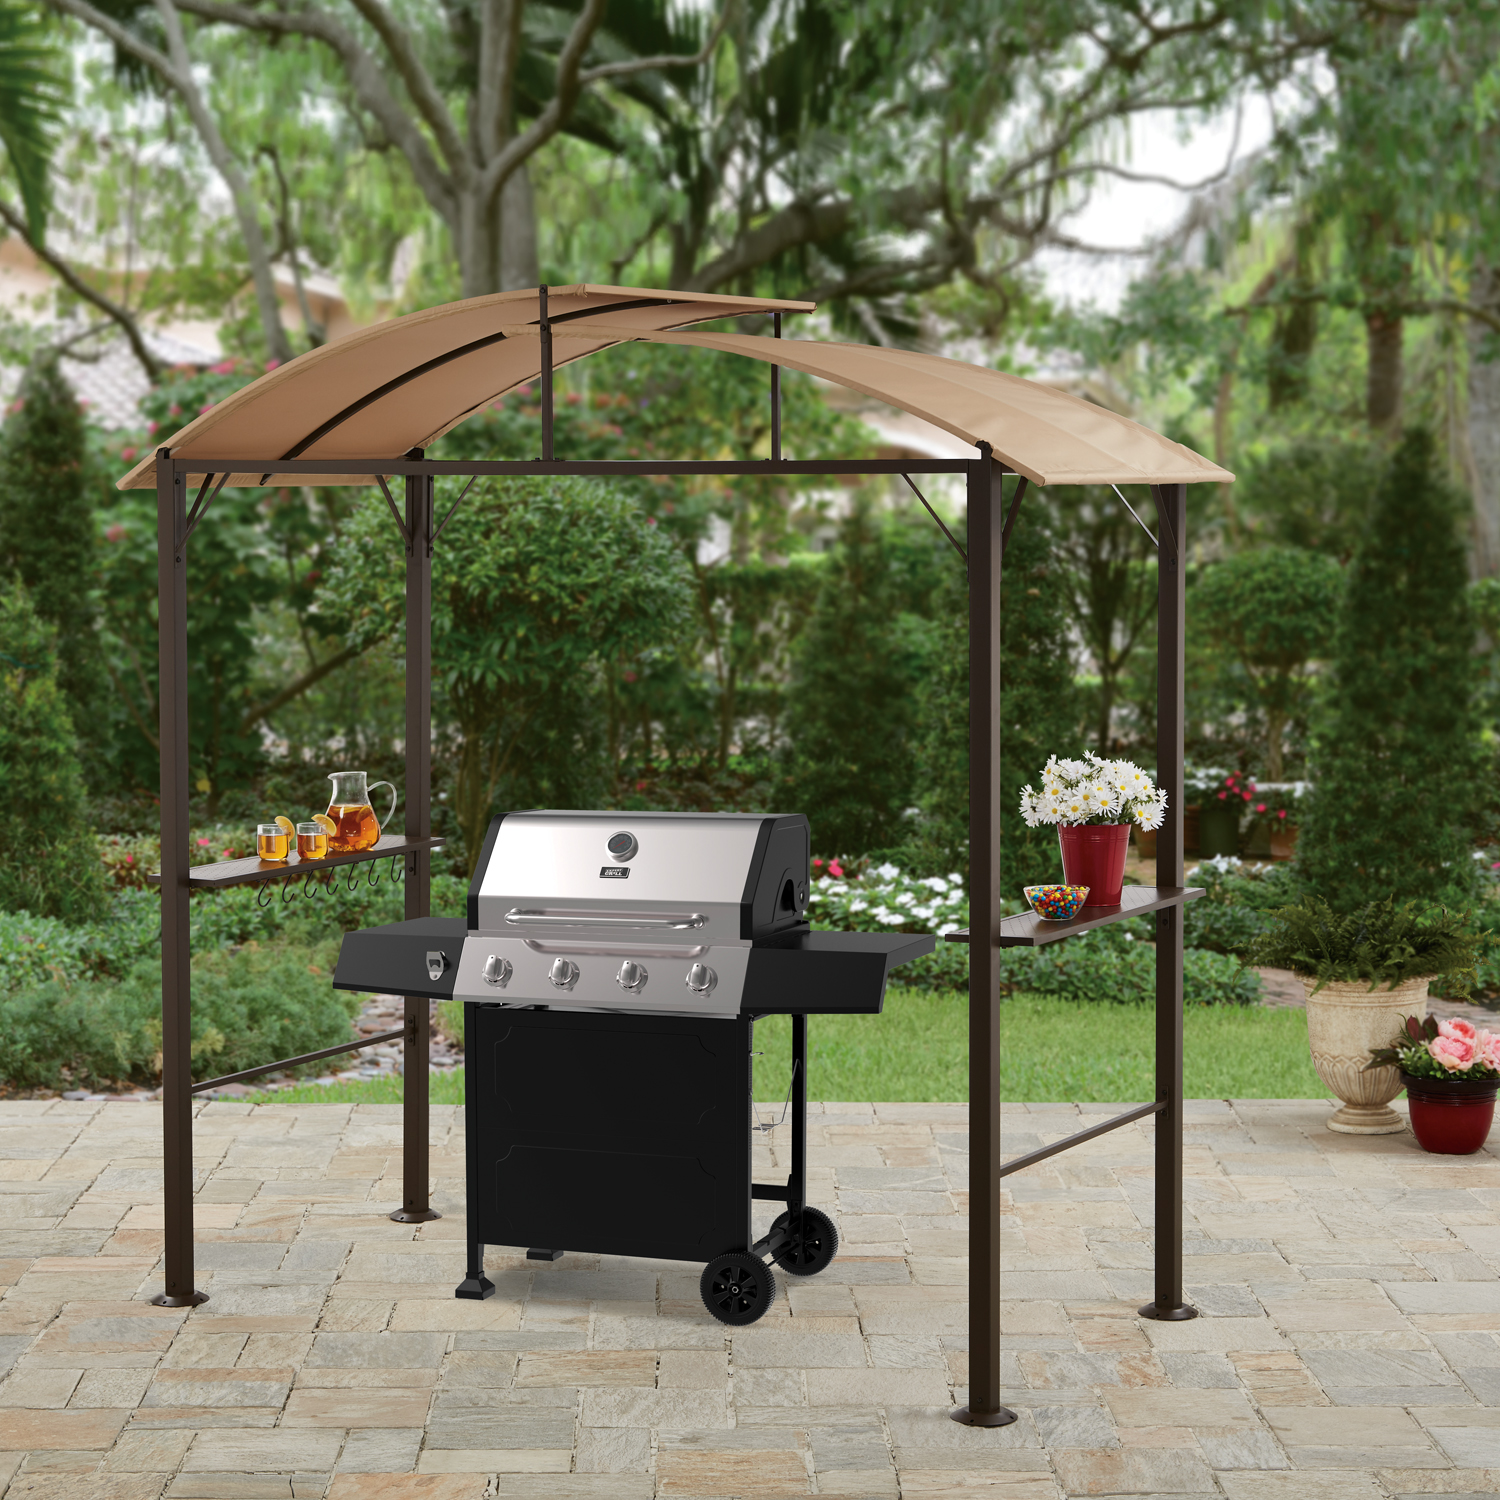 Better Homes and Gardens Lauderdale Curved Hardtop Grill Gazebo by SHANGHAI HE FENG INTERNATIONAL TRADE COLTD